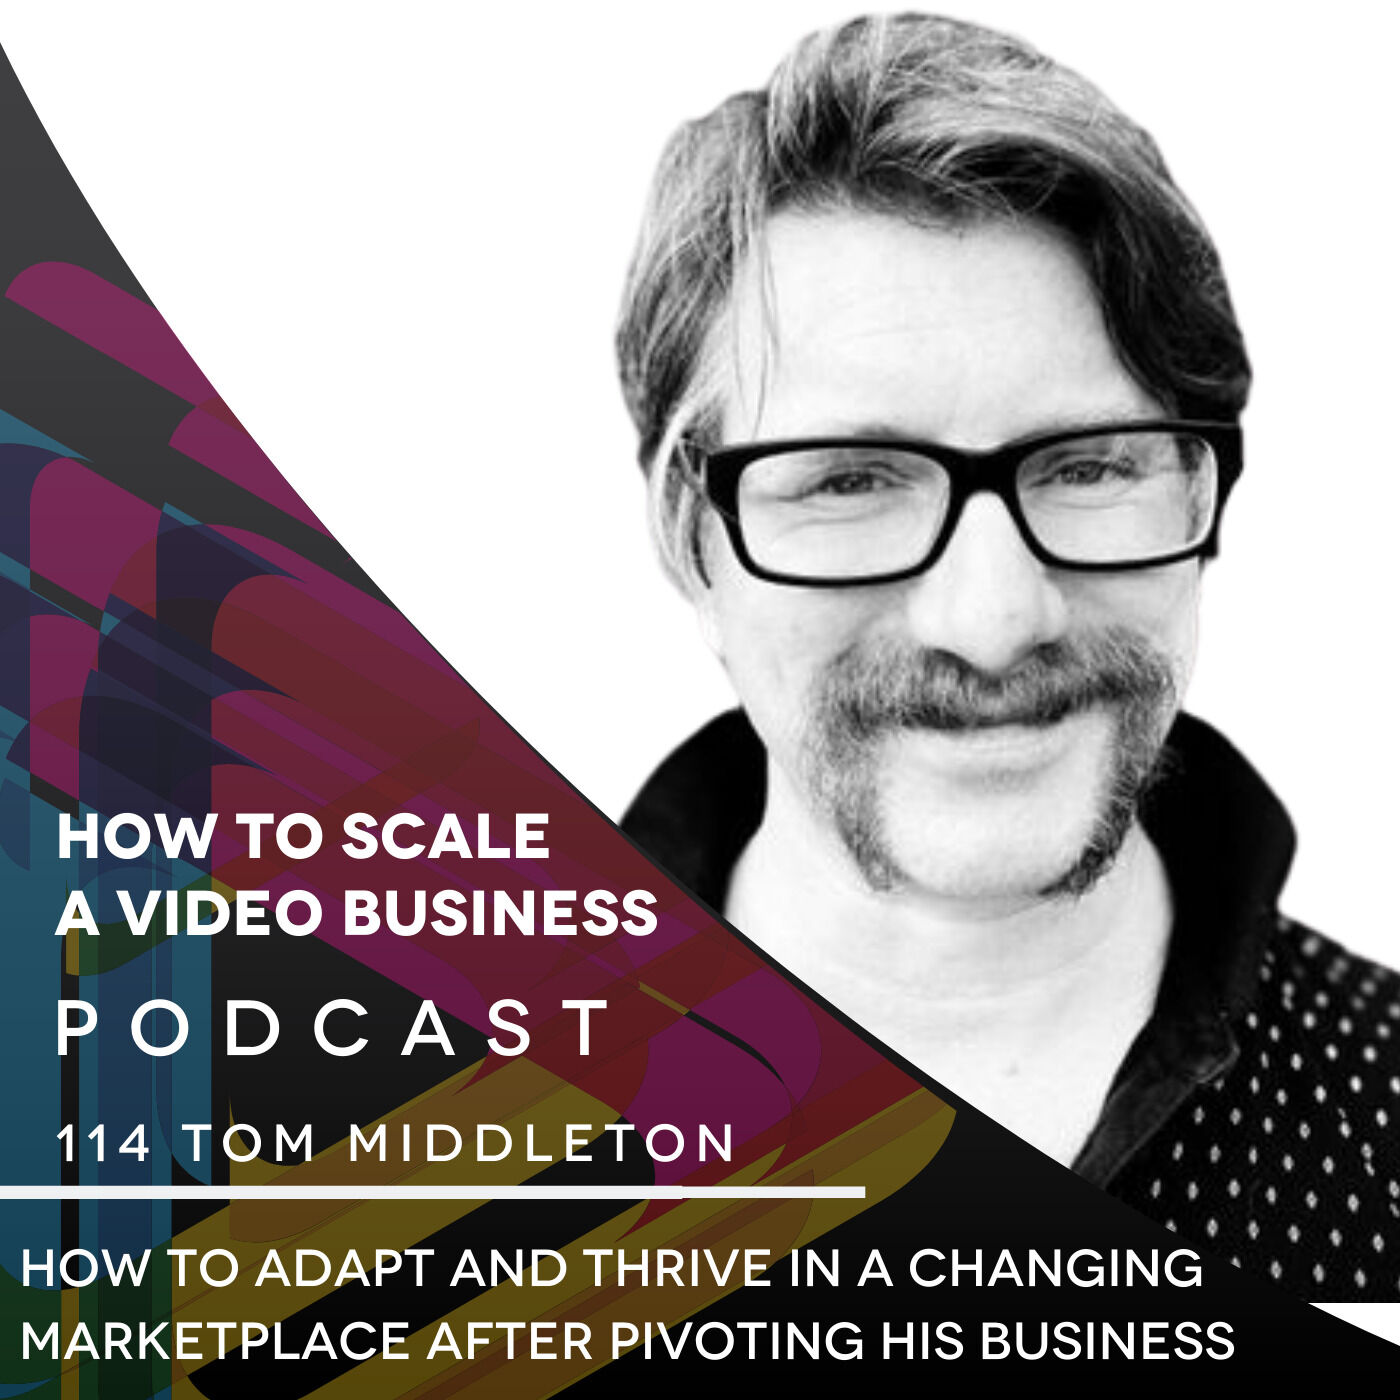 How to Adapt and Thrive in a changing marketplace after pivoting his business EP#114 - Tom Middleton